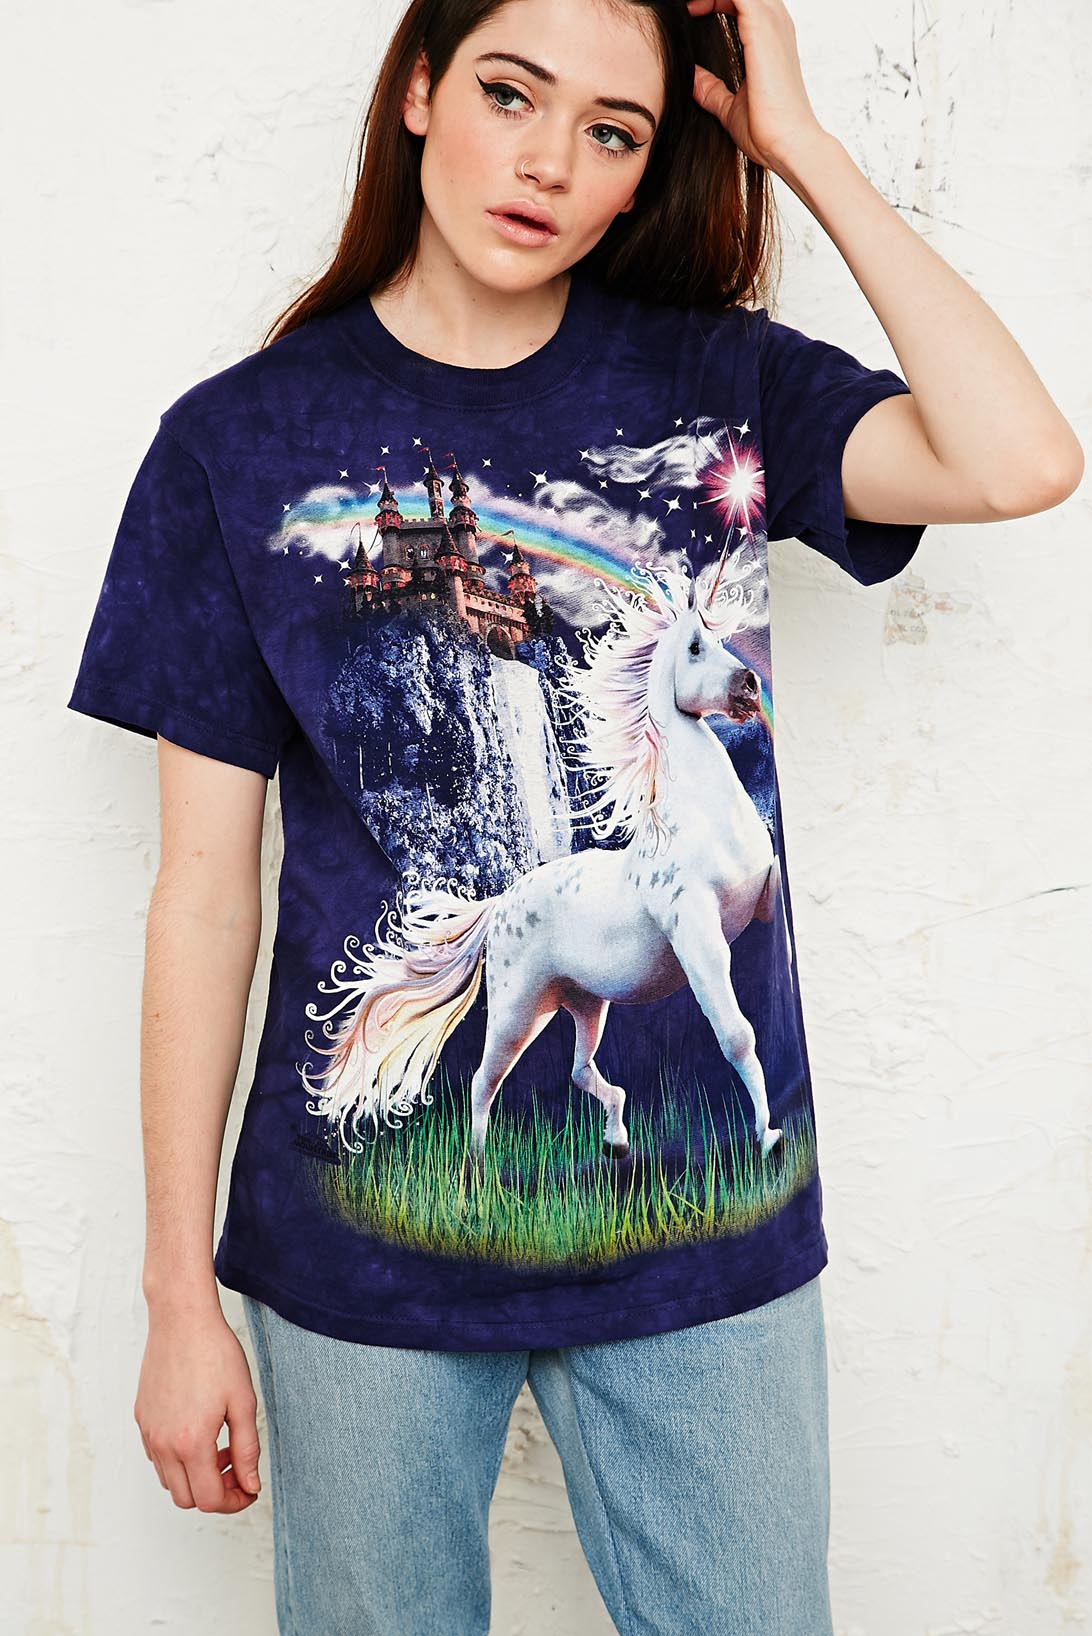 unicorn-t-shirt-urban-outfitters